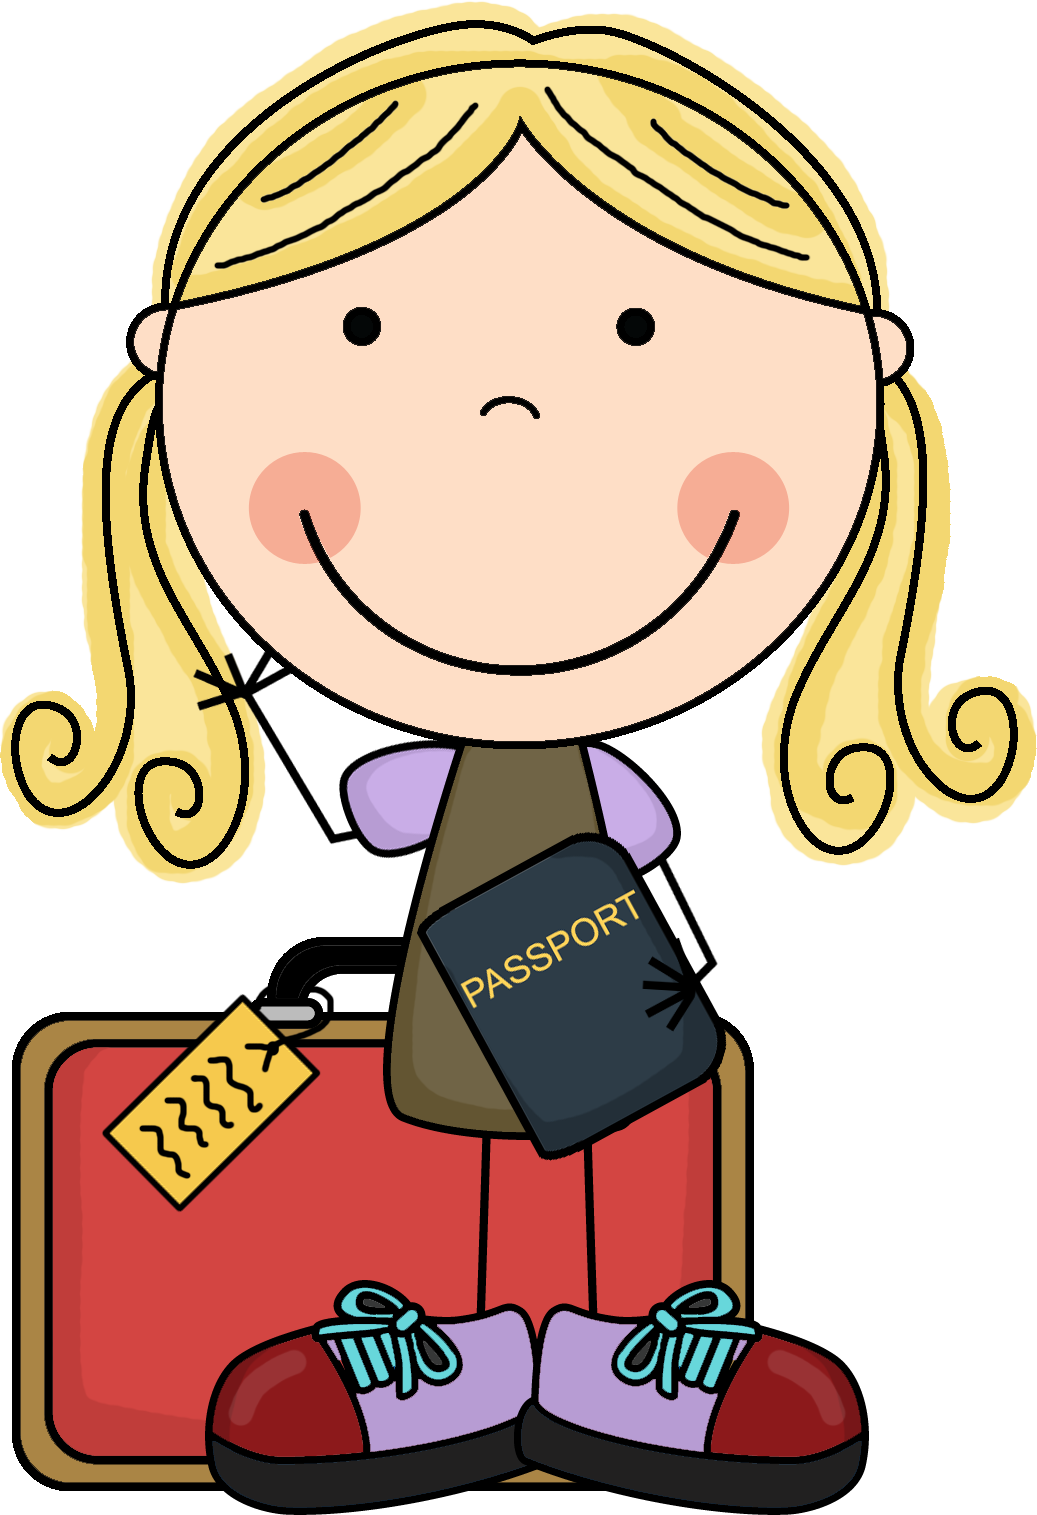 Travel clipart family time Trip Clipart Packing Travel Cliparts